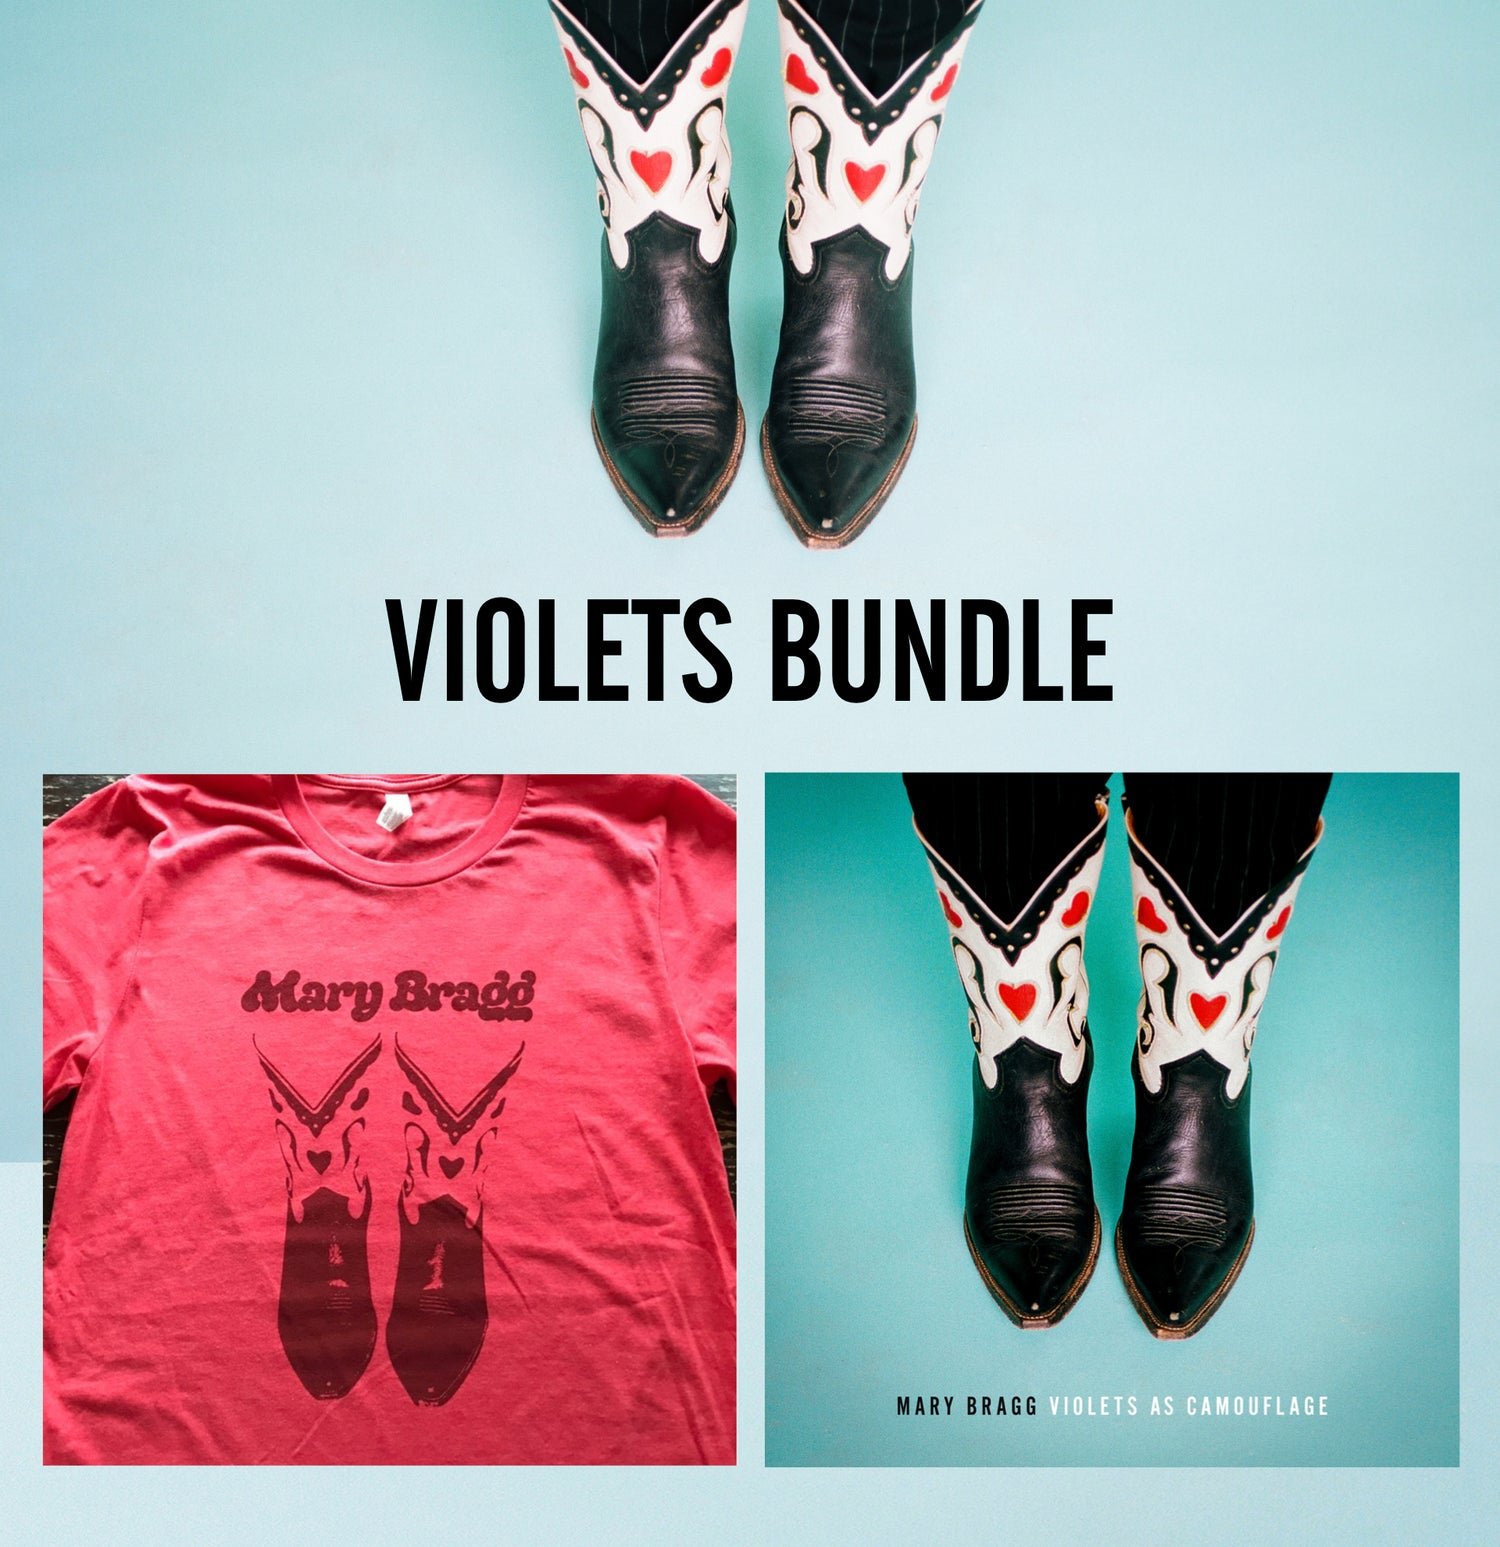 Image of Violets Bundle [Signed CD and T-Shirt]